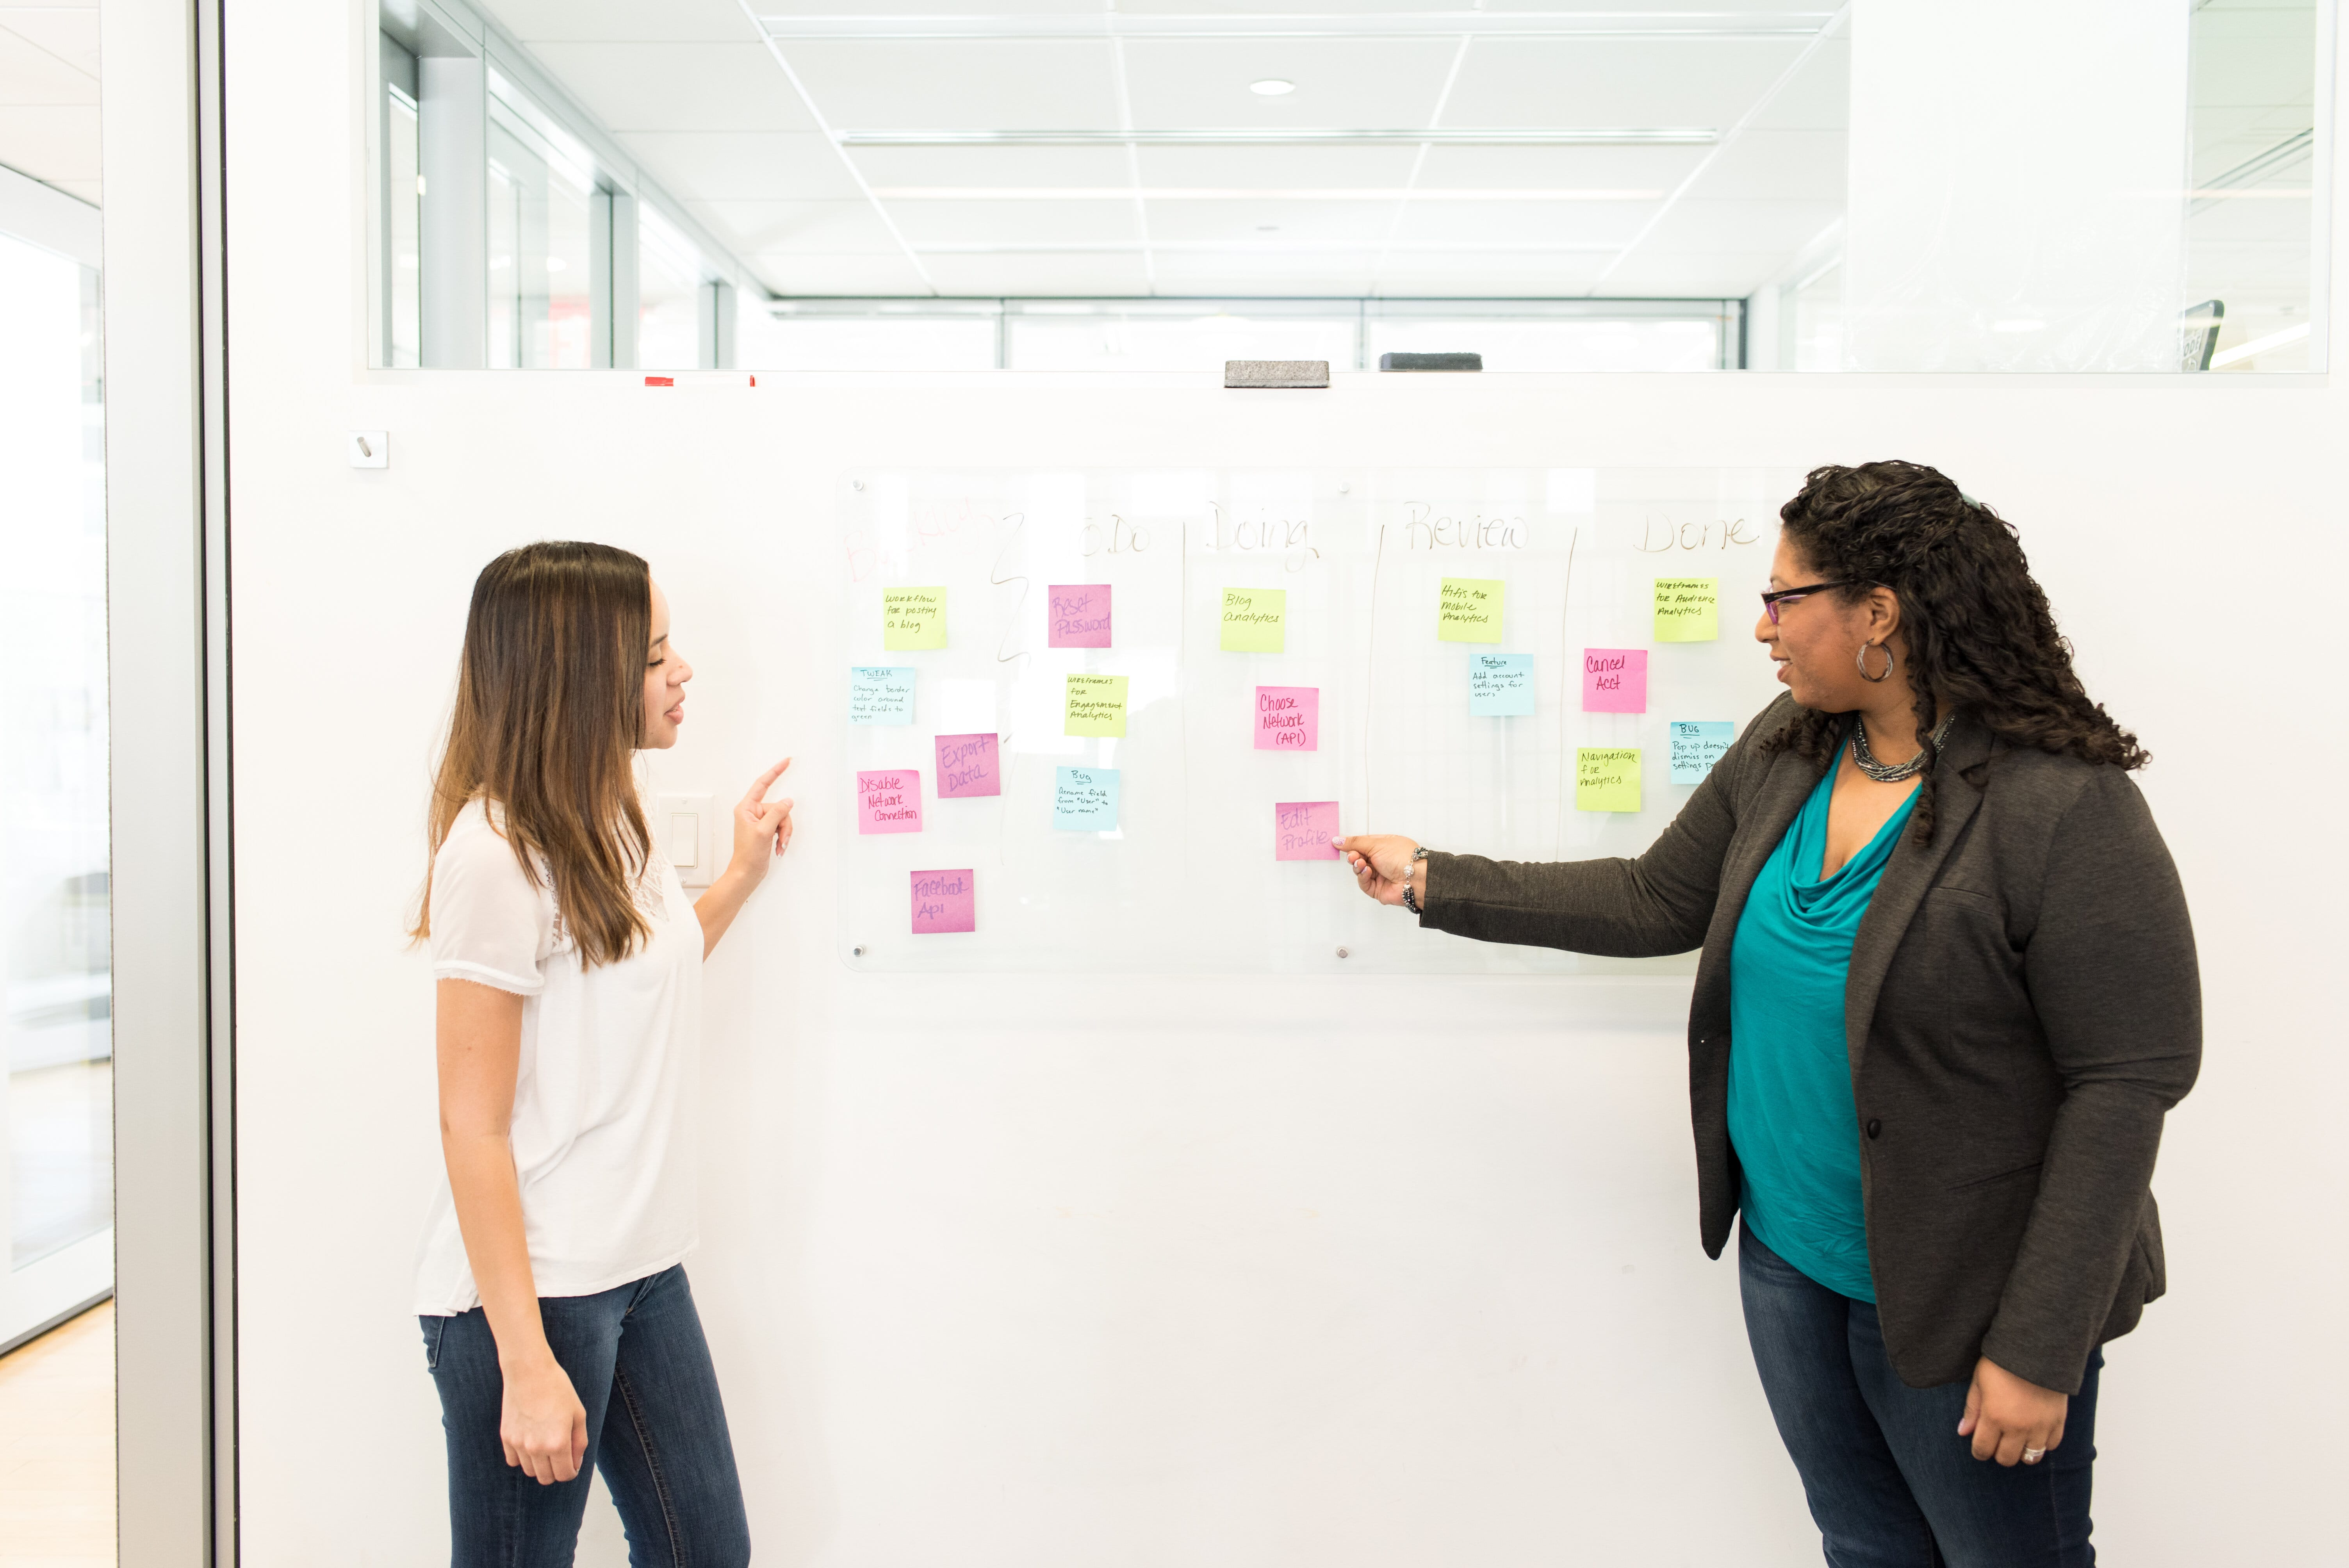 Two women standing at a white board with sticky notes completing the design thinking process